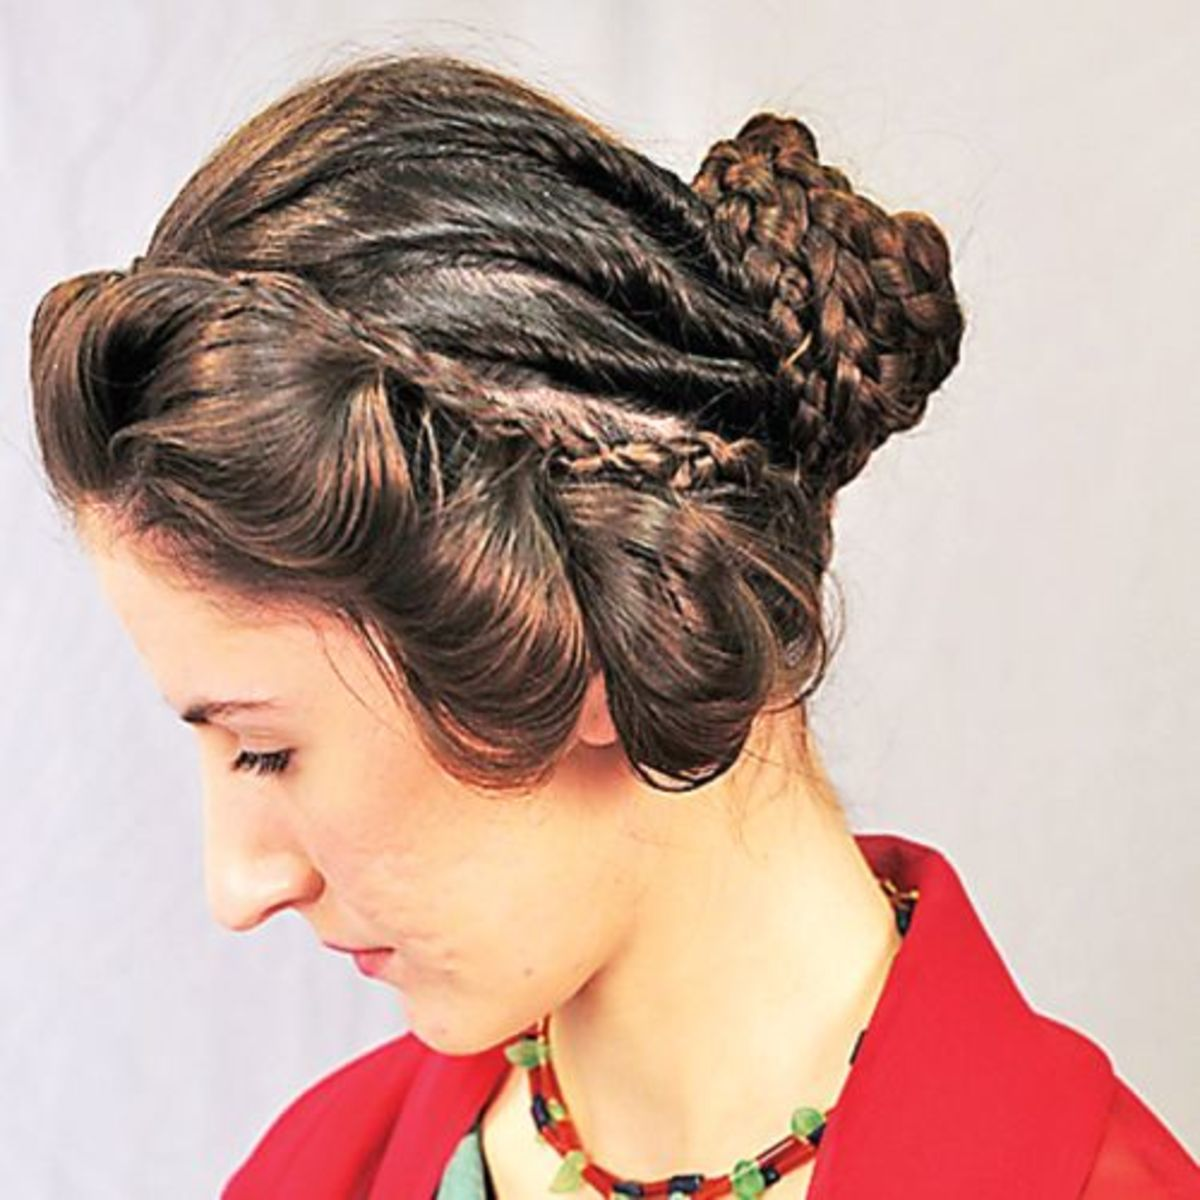 roman style hair hair styles of ancient rome hubpages 4247 | 9764436